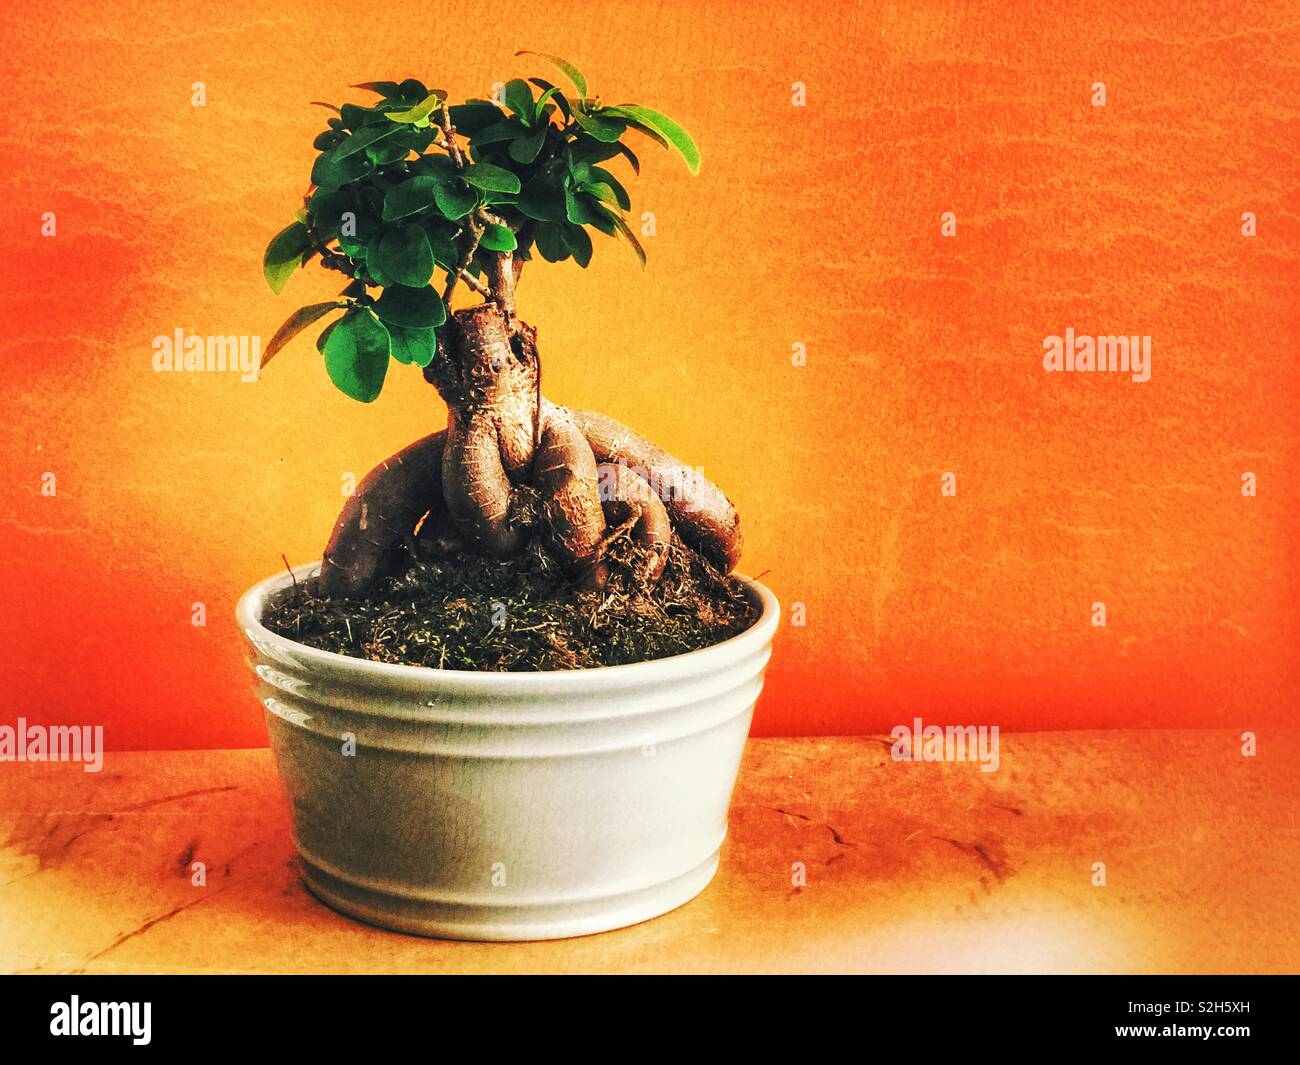 Bonsai tree (ginseng ficus) in a pot - Stock Image